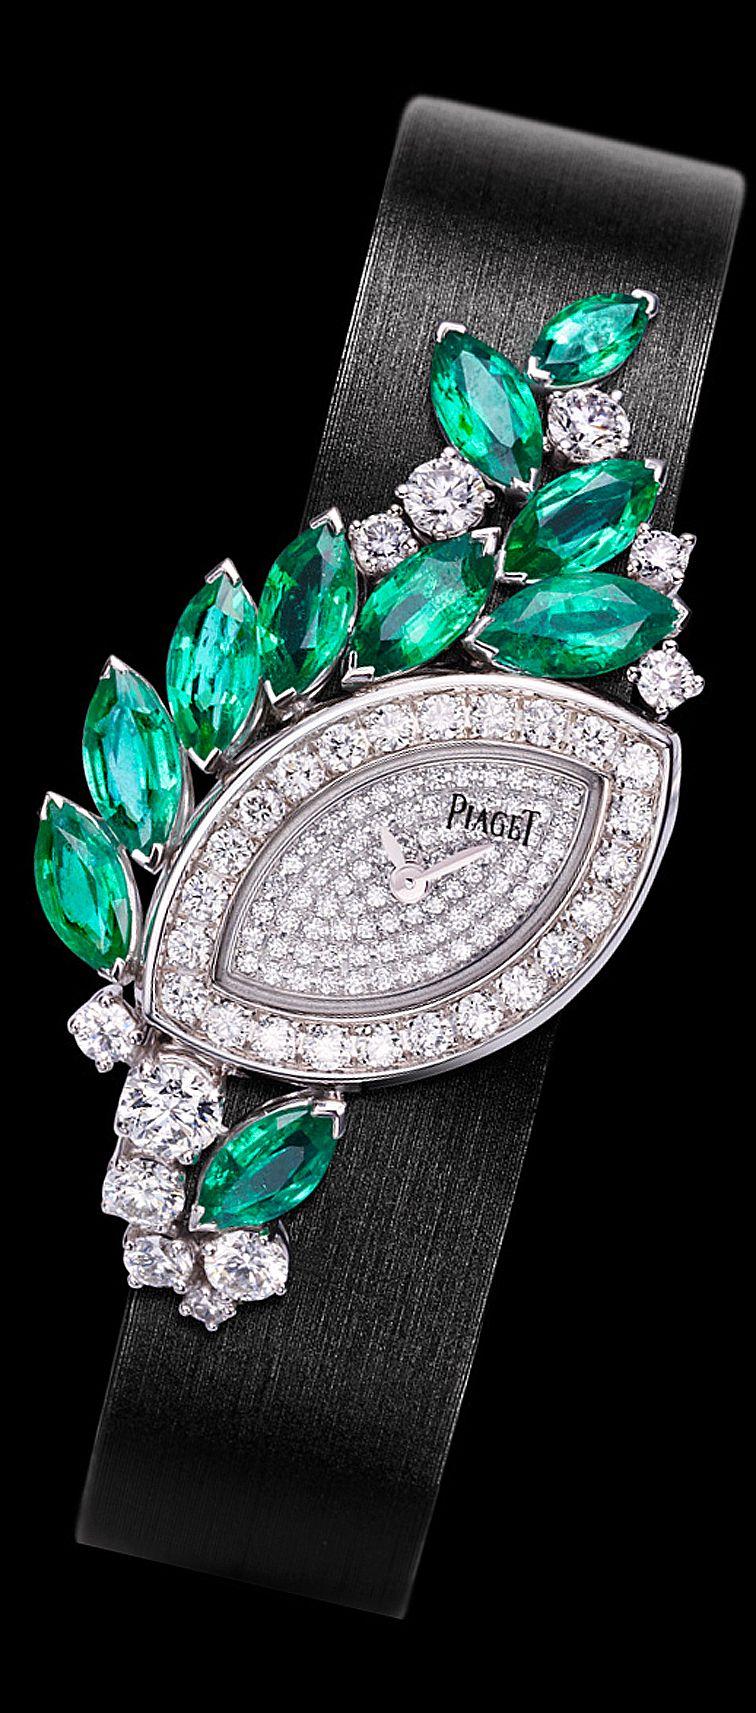 Fashion*Jewellery*Watches | Rosamaria G Frangini || Piaget Limelight Garden Party watch 2014-15